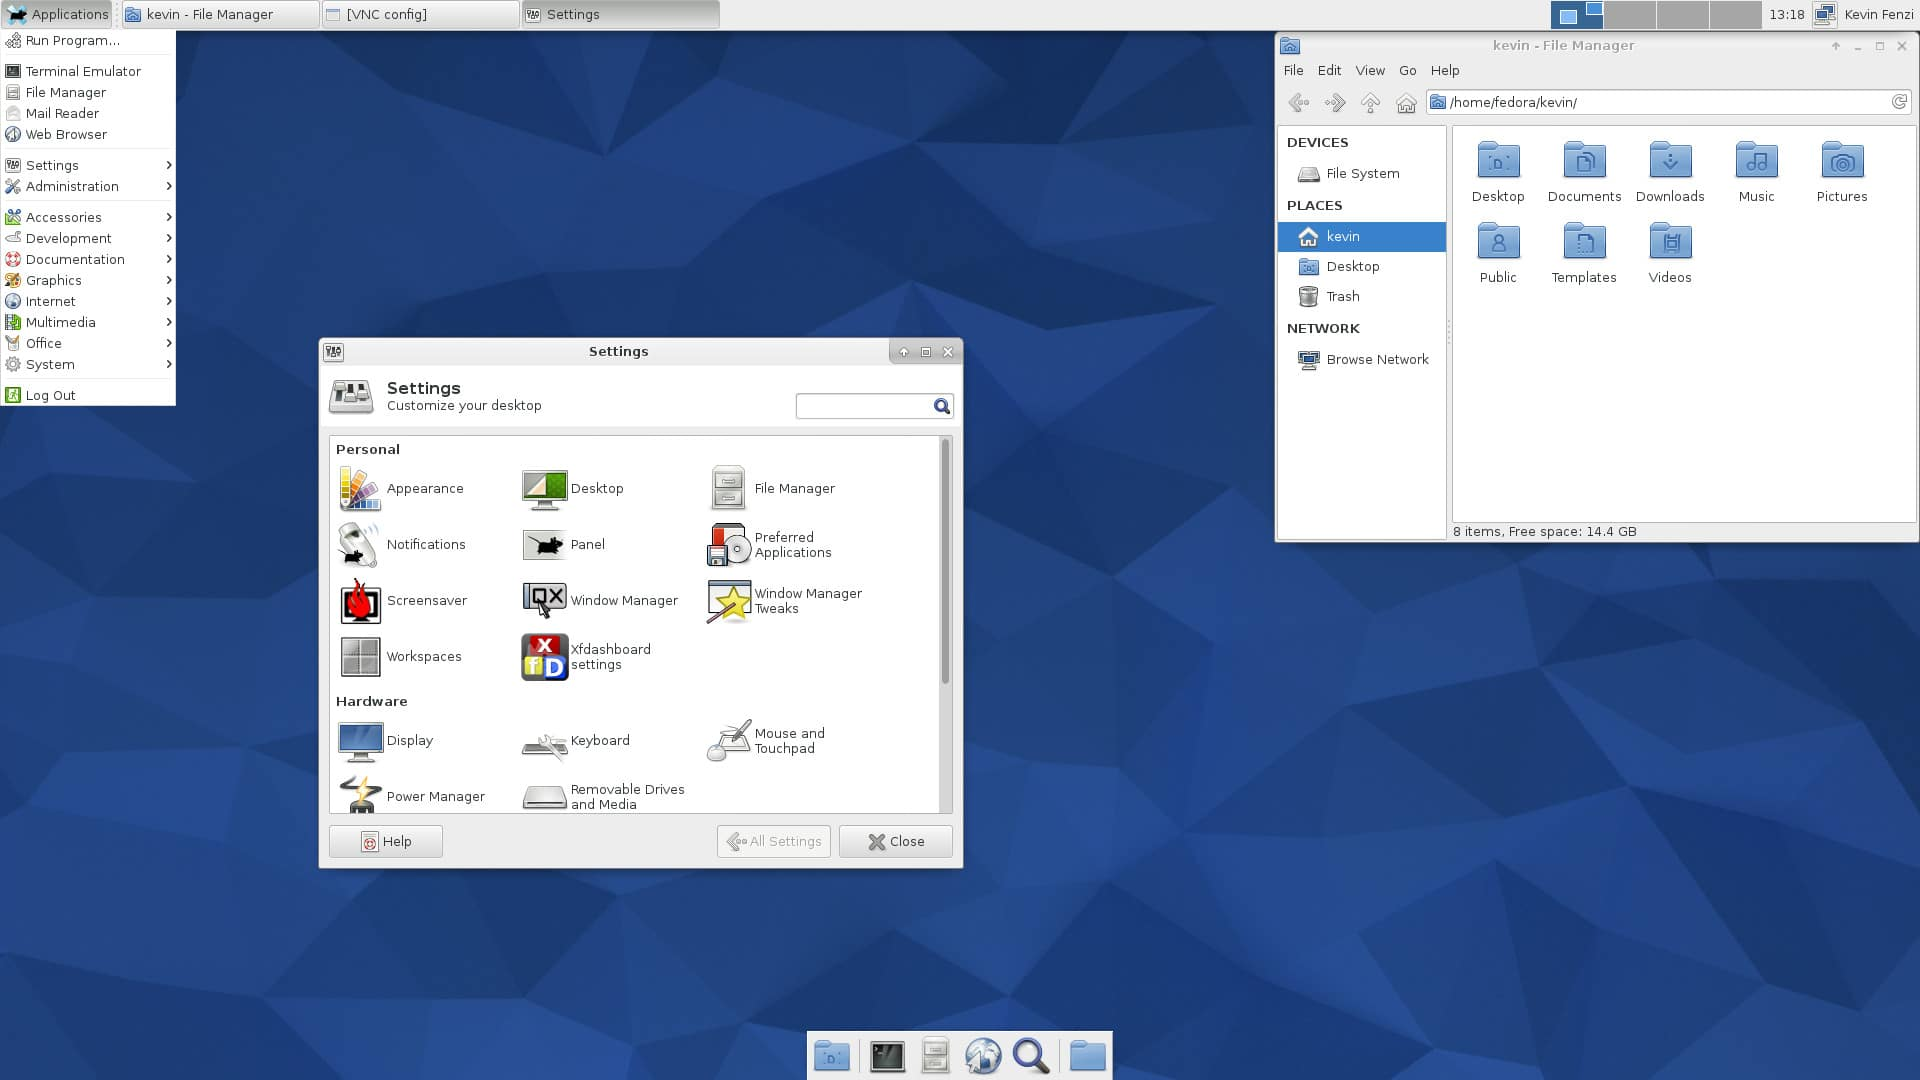 screenshot-xfce-fedorafans.com